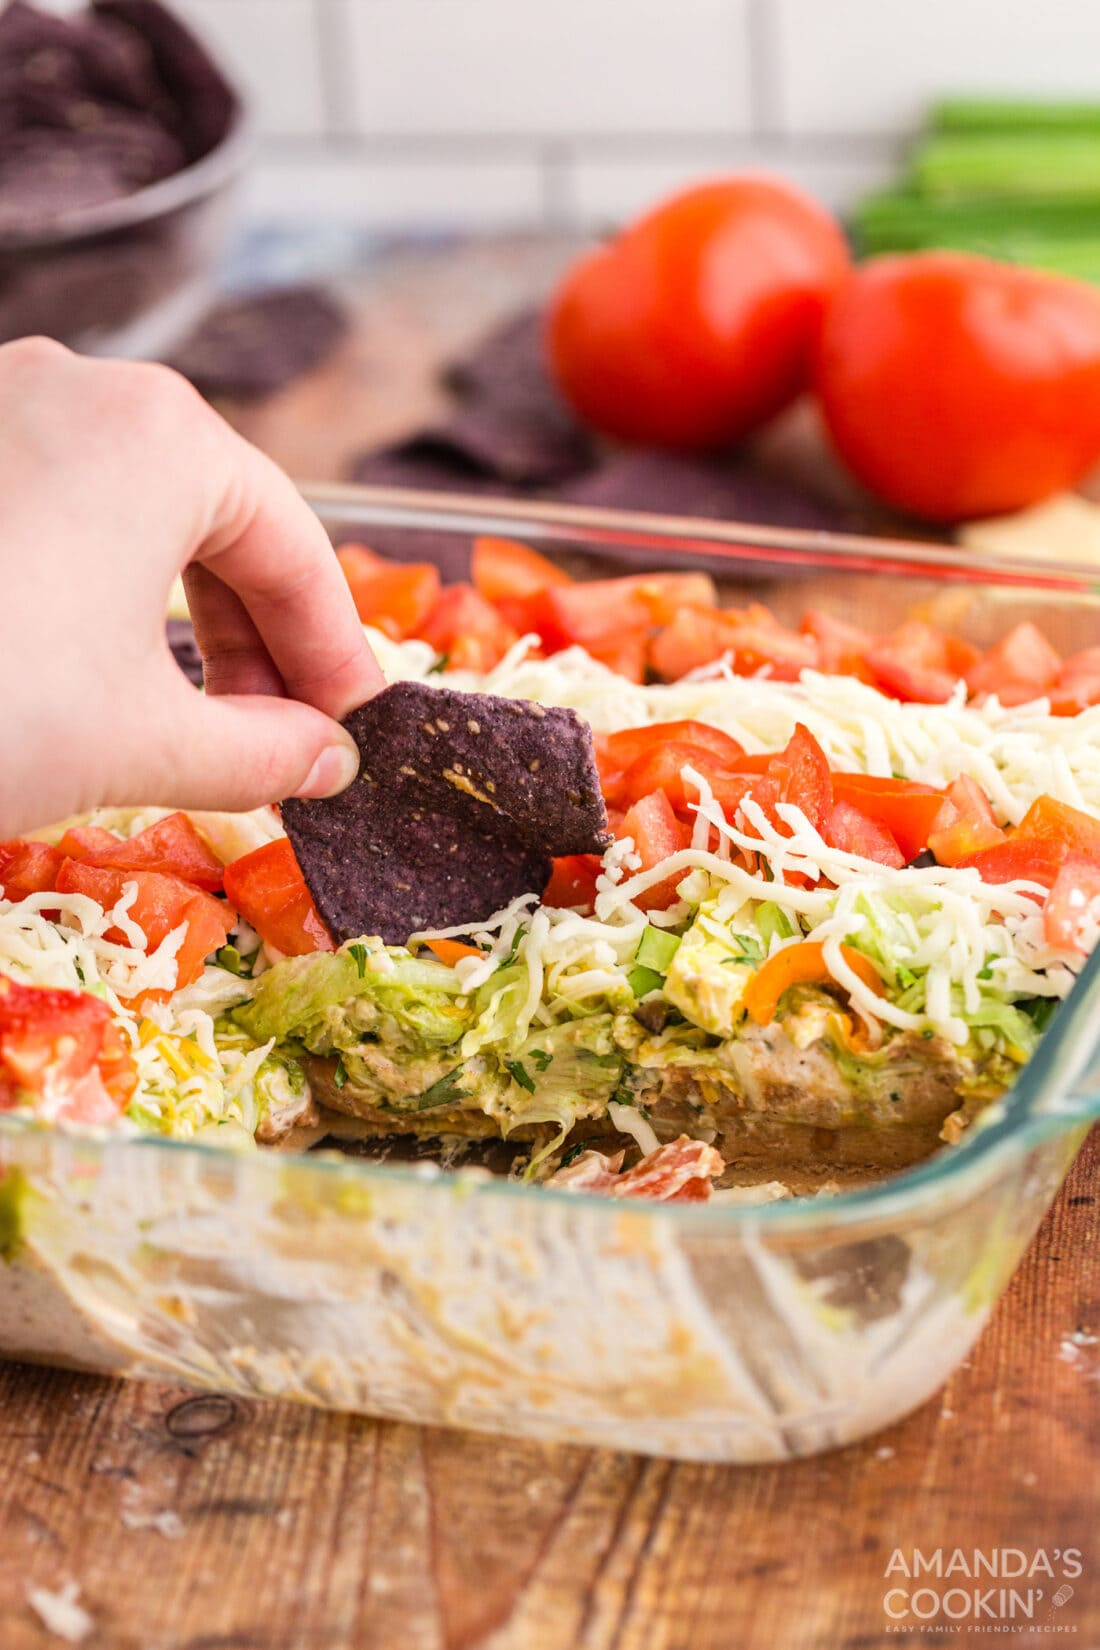 using chip to scoop taco salad